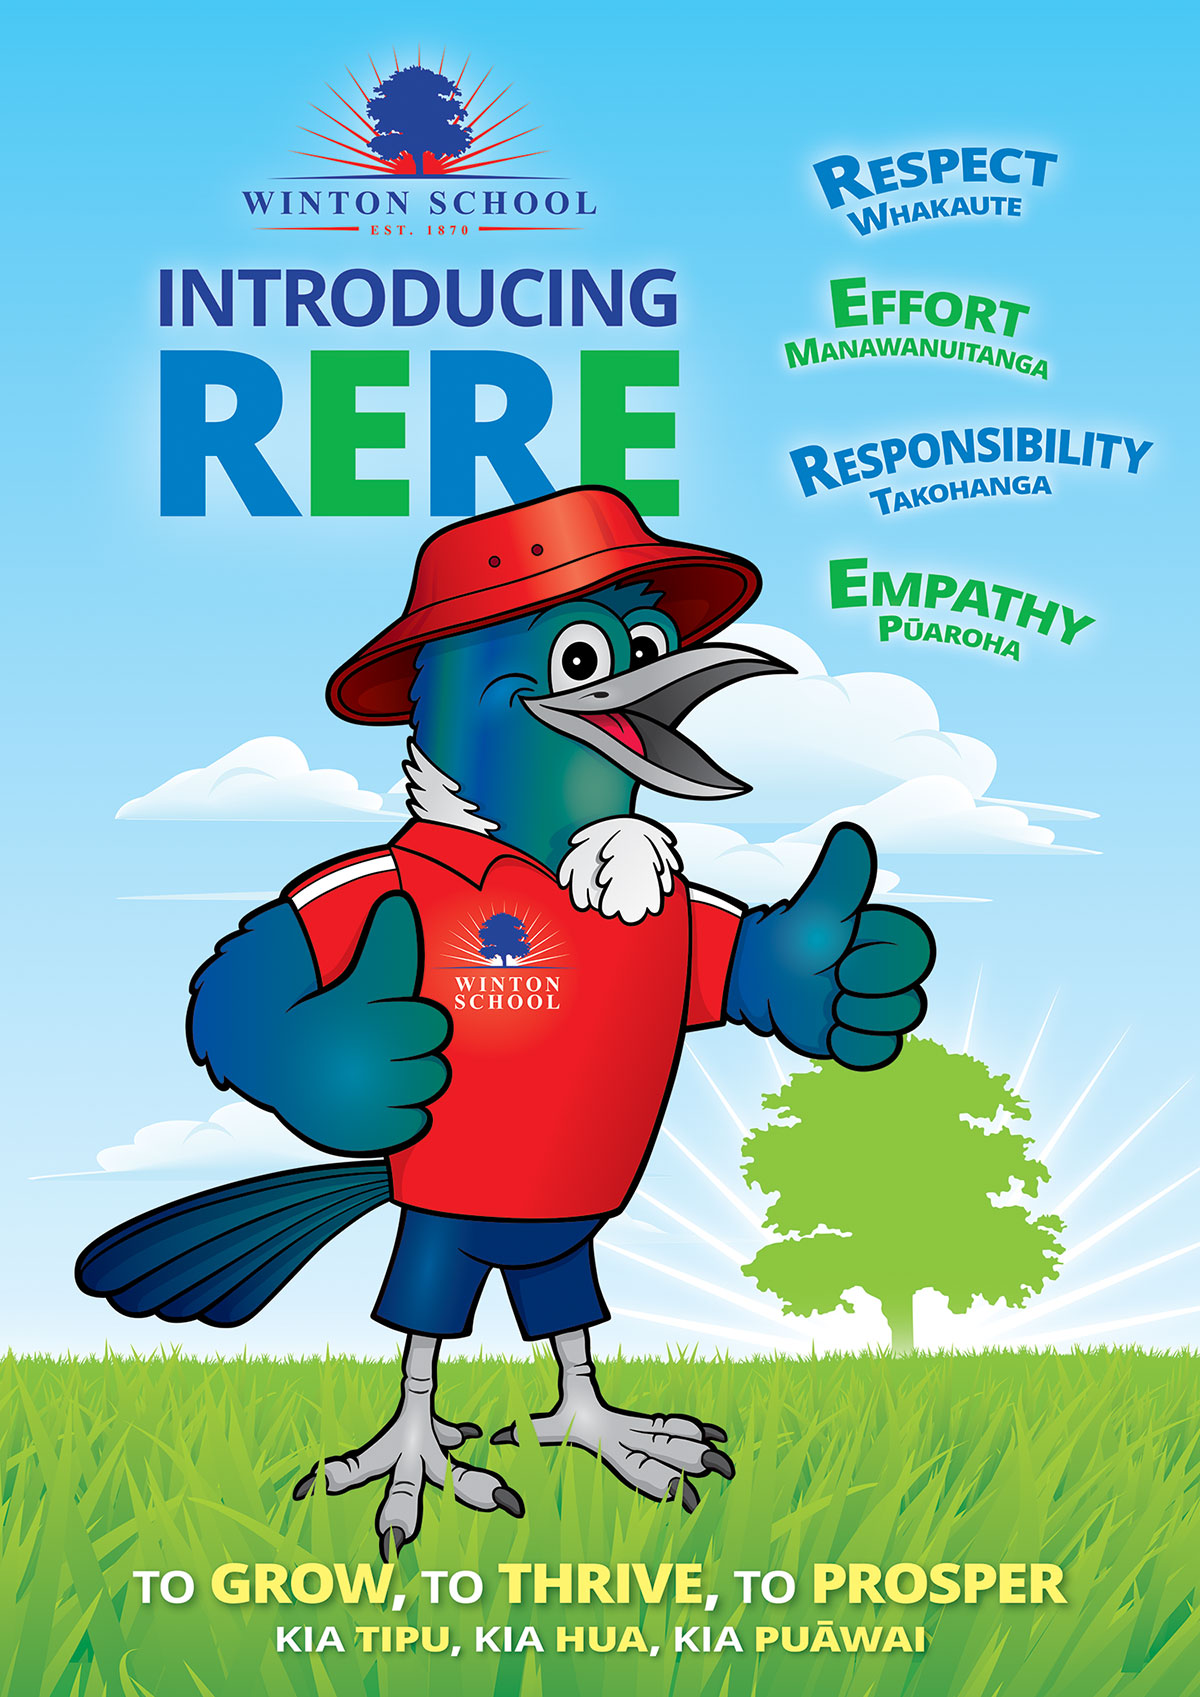 Winton-School-Mascot-Introduction-Poster